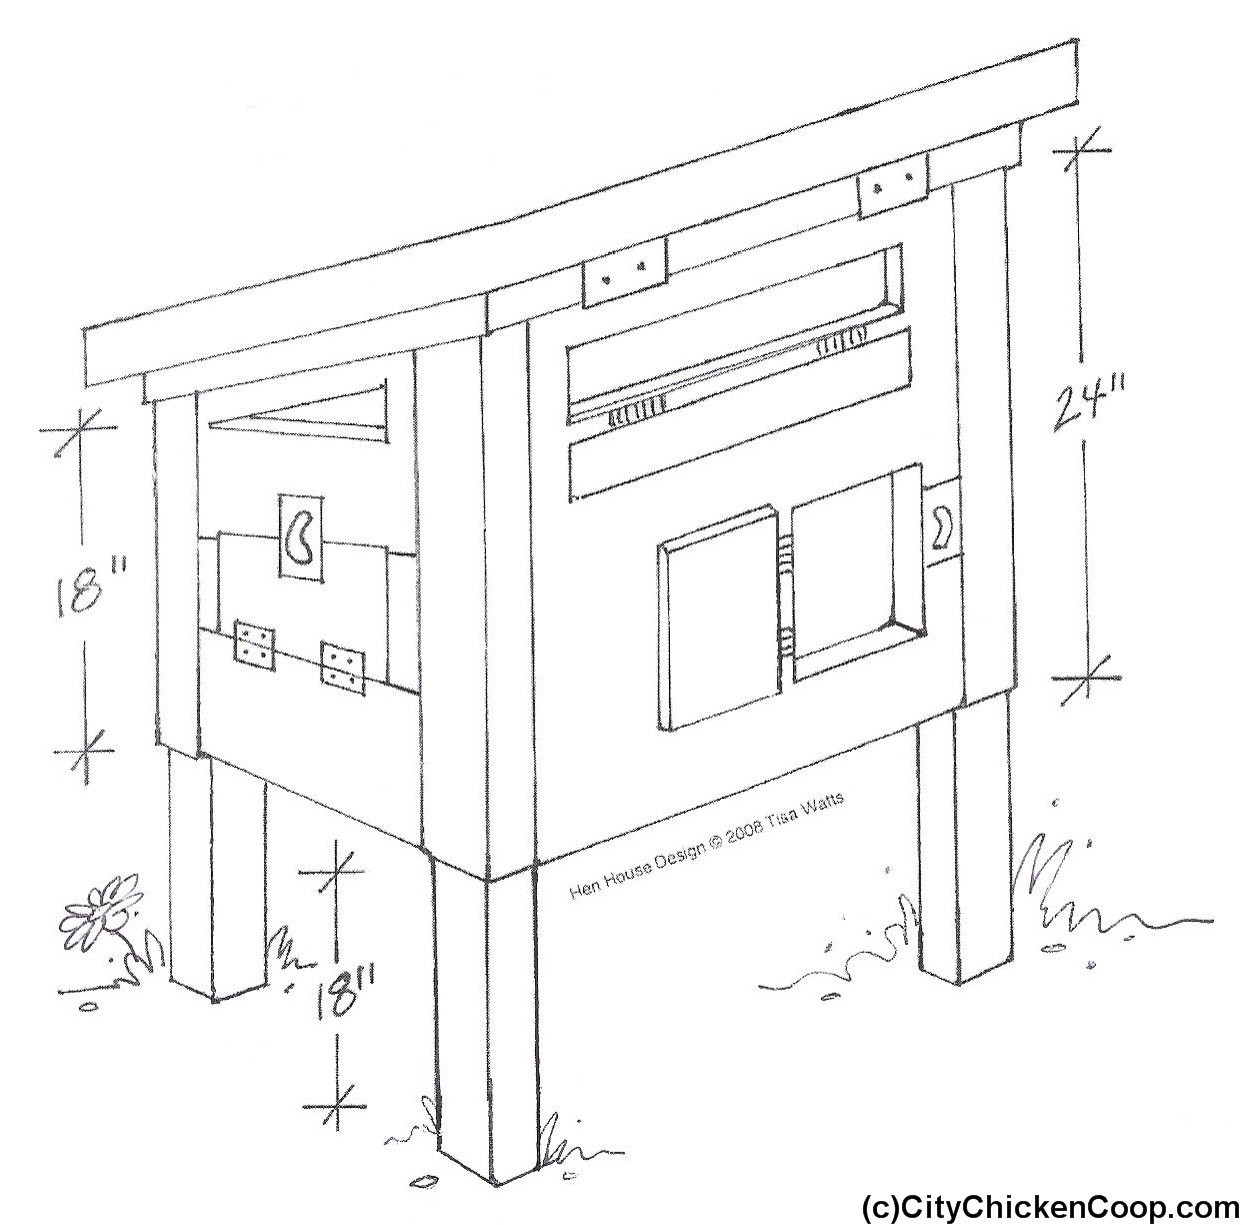 Image detail for small chicken coop building plans for Chicken coop size for 6 chickens